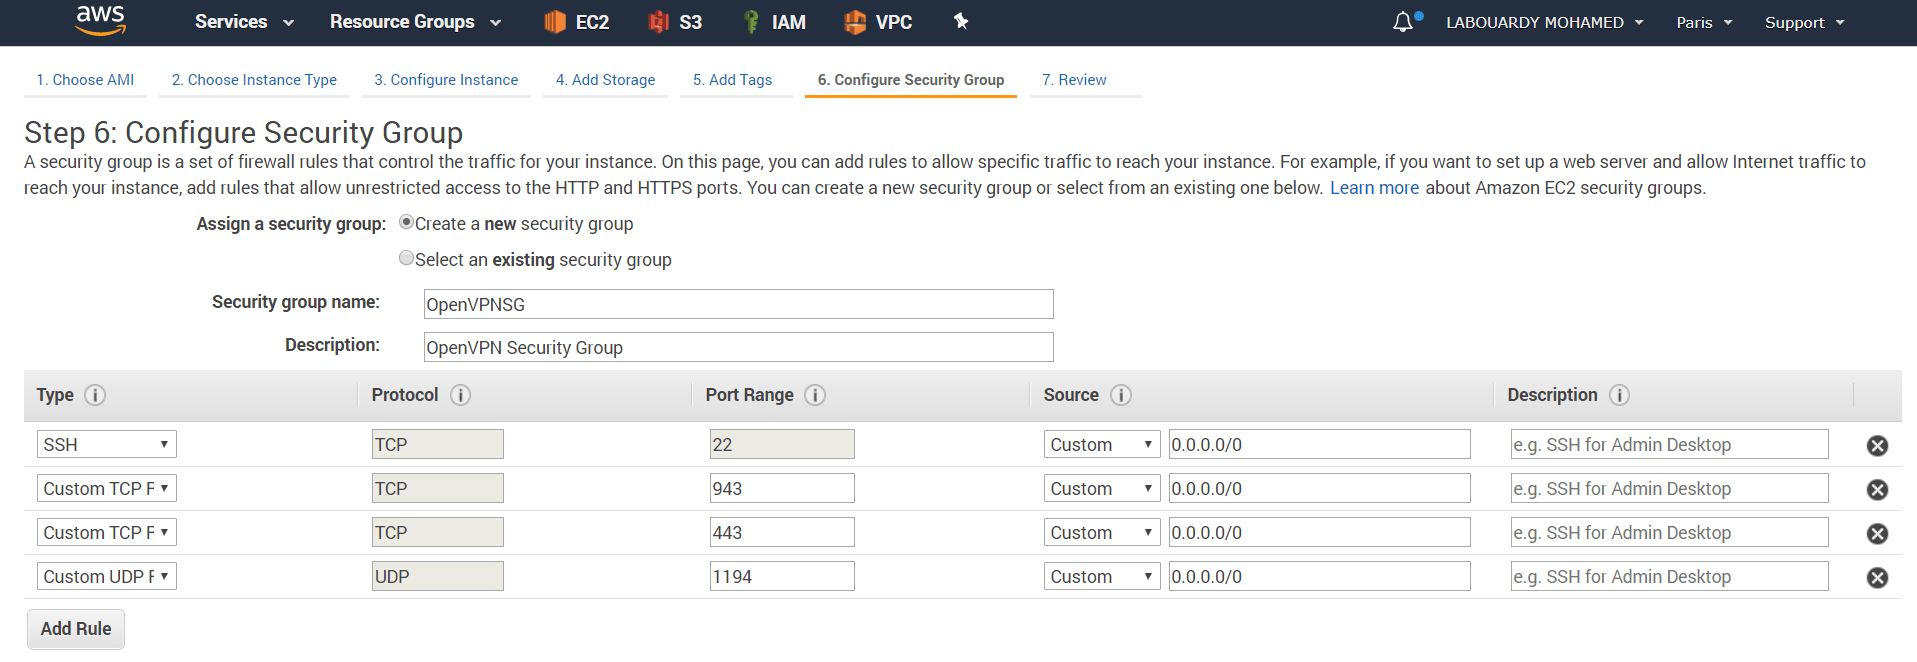 AWS OpenVPN Access Server - Mohamed Labouardy Software